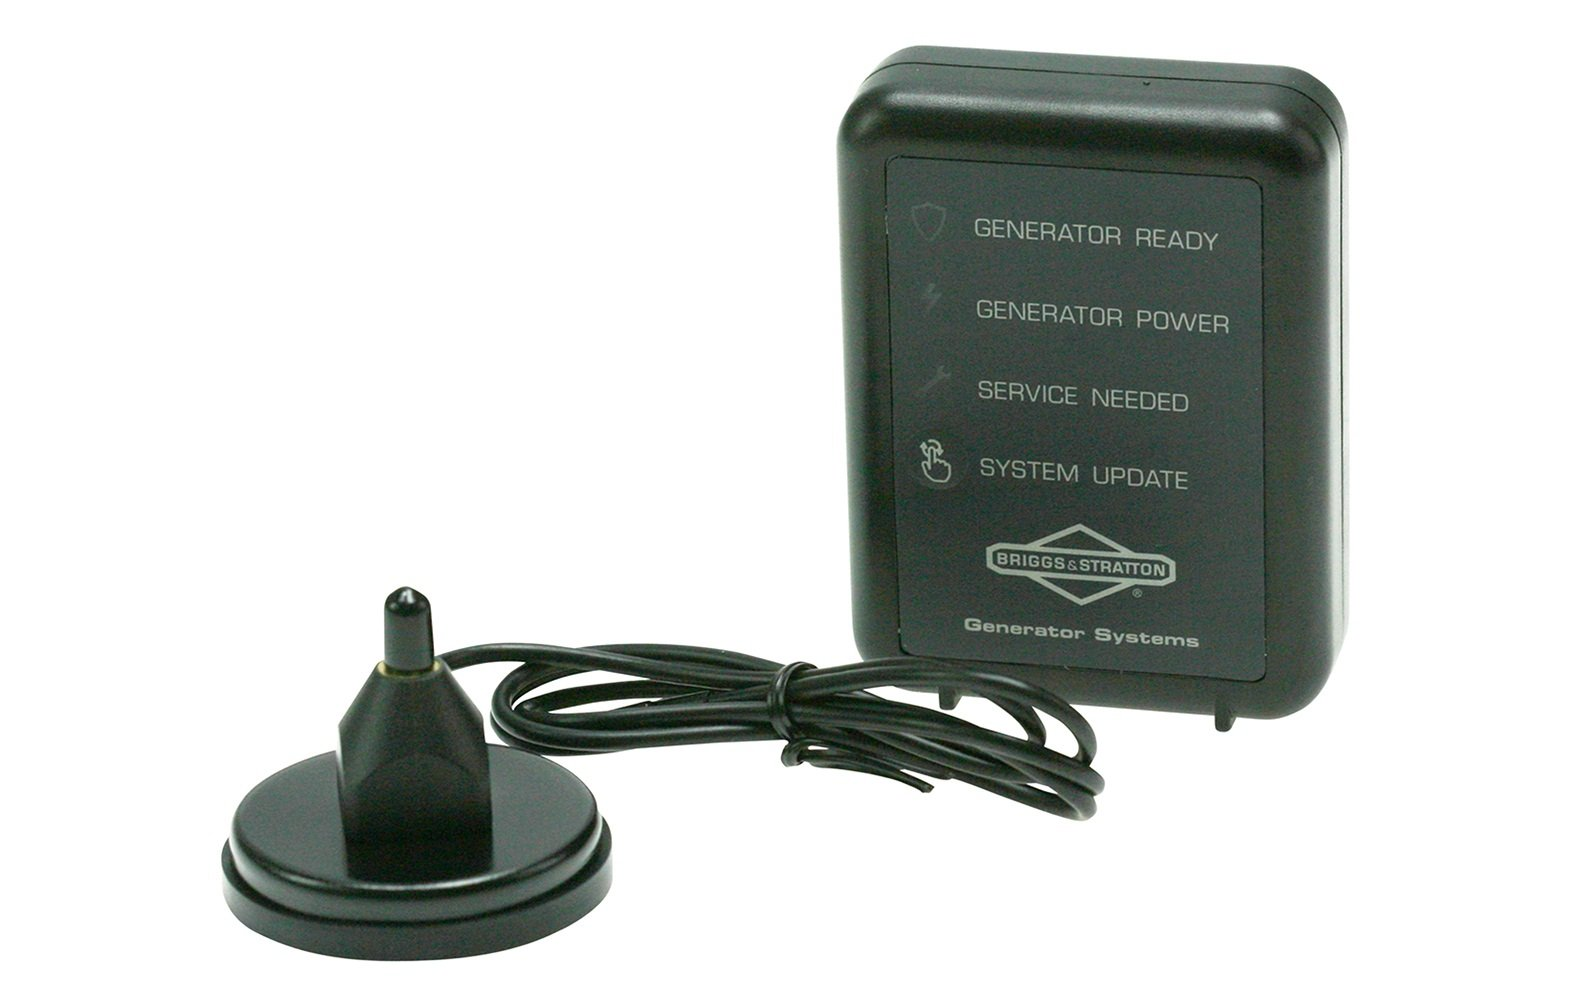 Briggs & Stratton 6264 Basic Wireless Monitor for 8-10kw Standby Generators by Briggs & Stratton